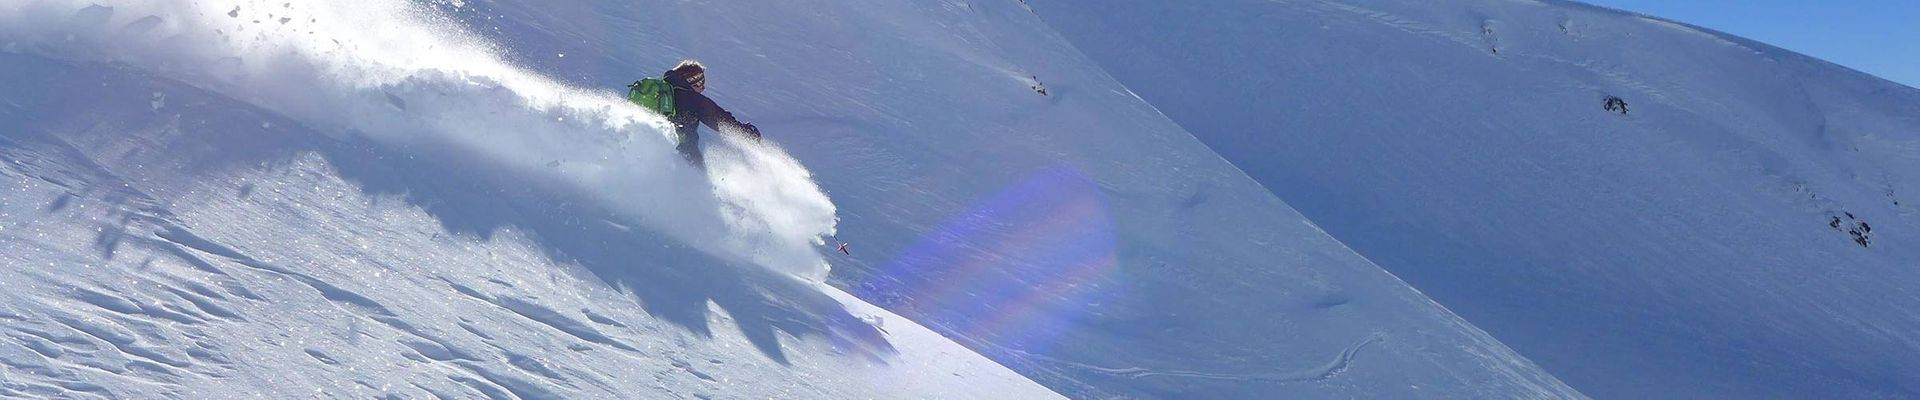 Avalanche Course For Individuals Zillertal, Tyrol, Austria #5bc0b2e3-fb26-455d-a099-7212396336ad